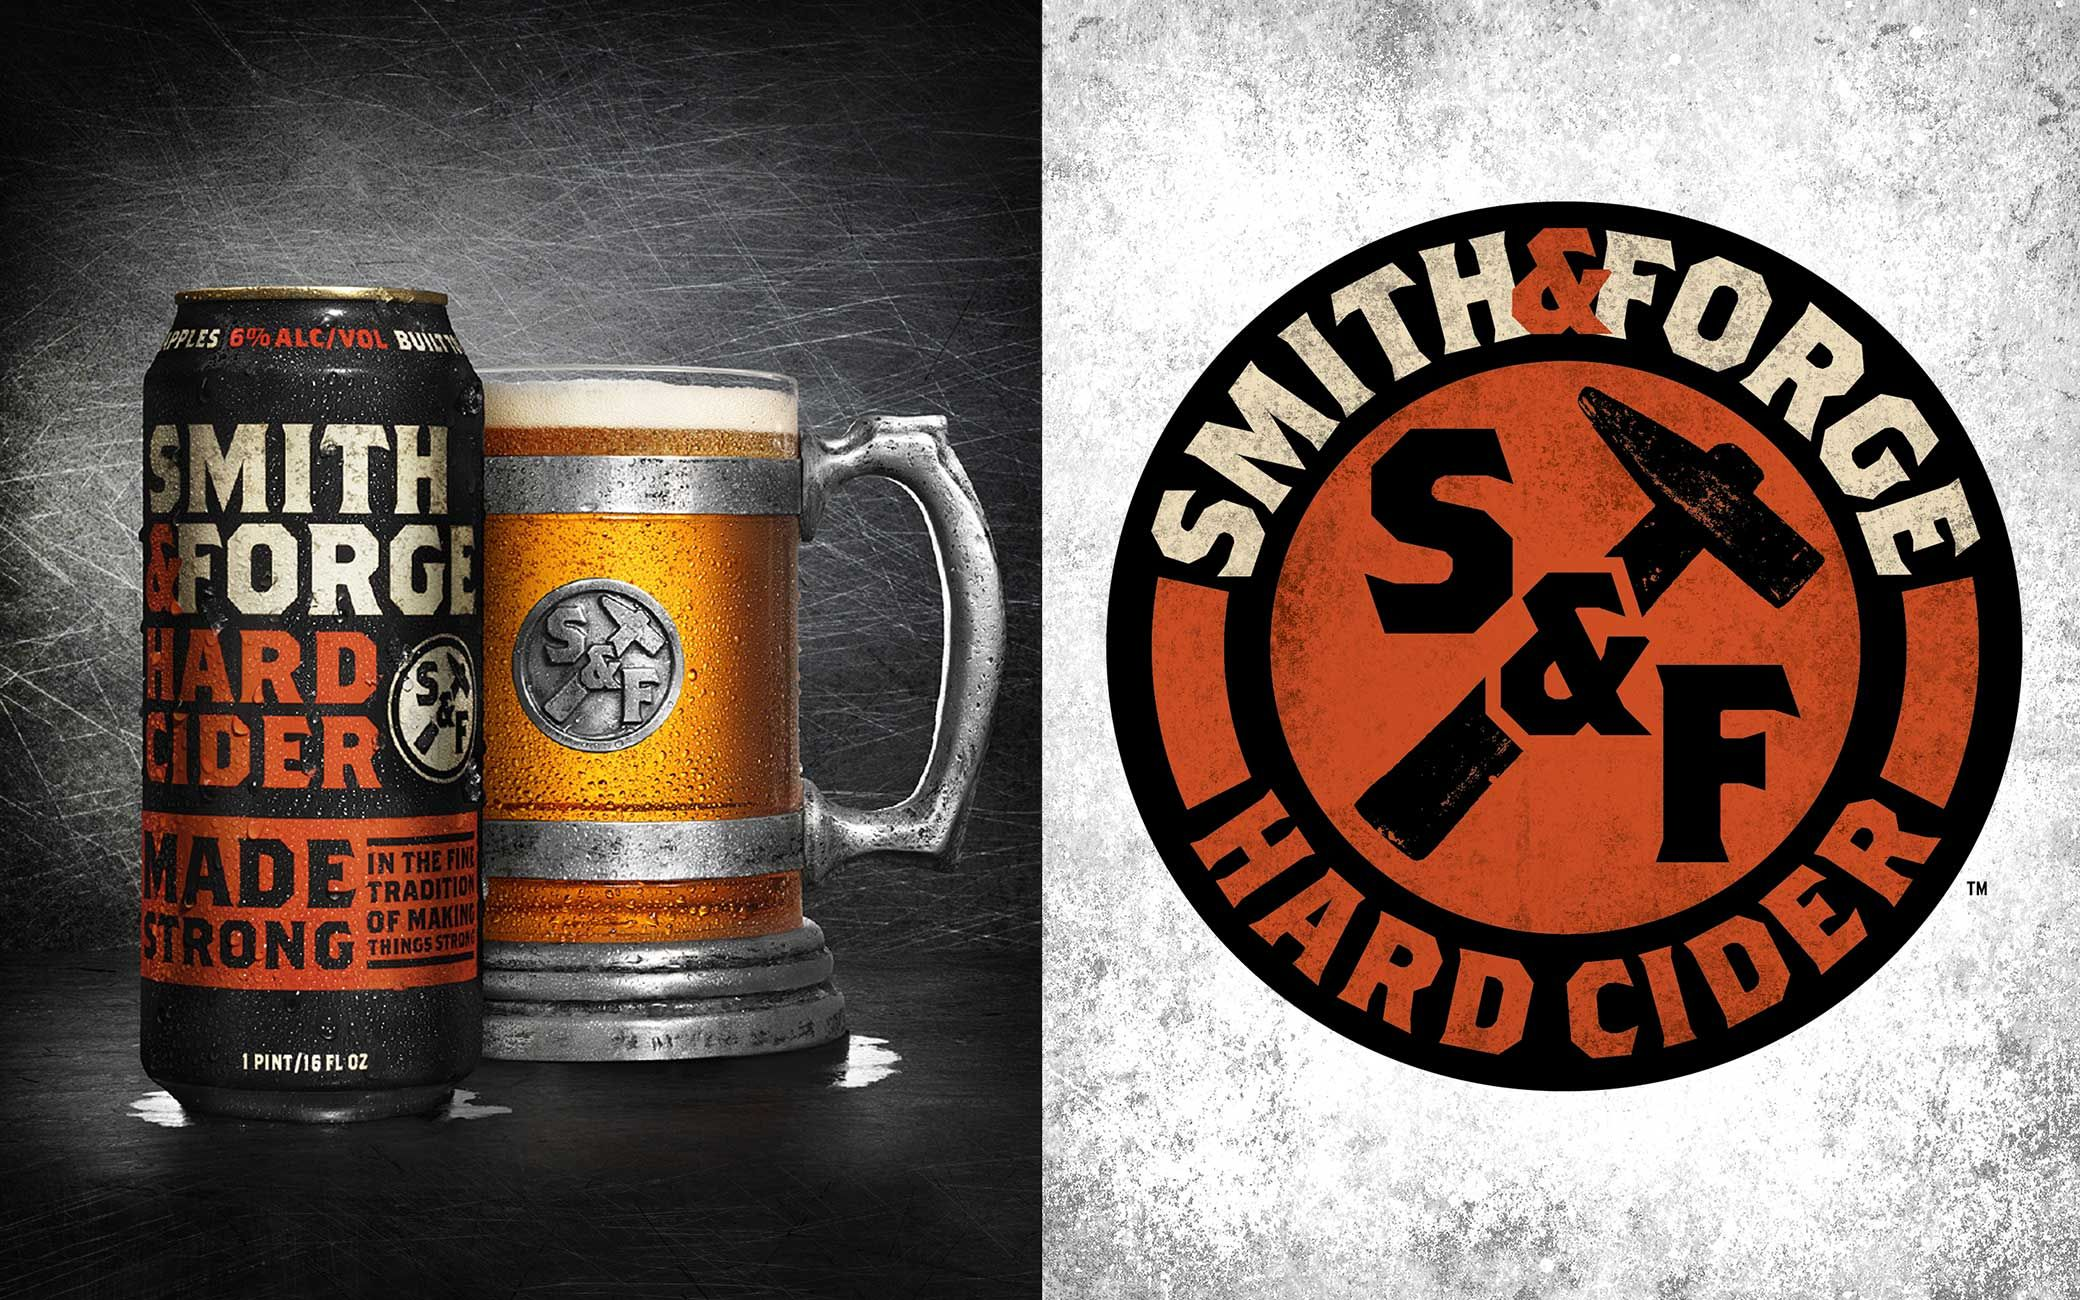 smith and forge. smith \u0026 forge hard cider logo and branding